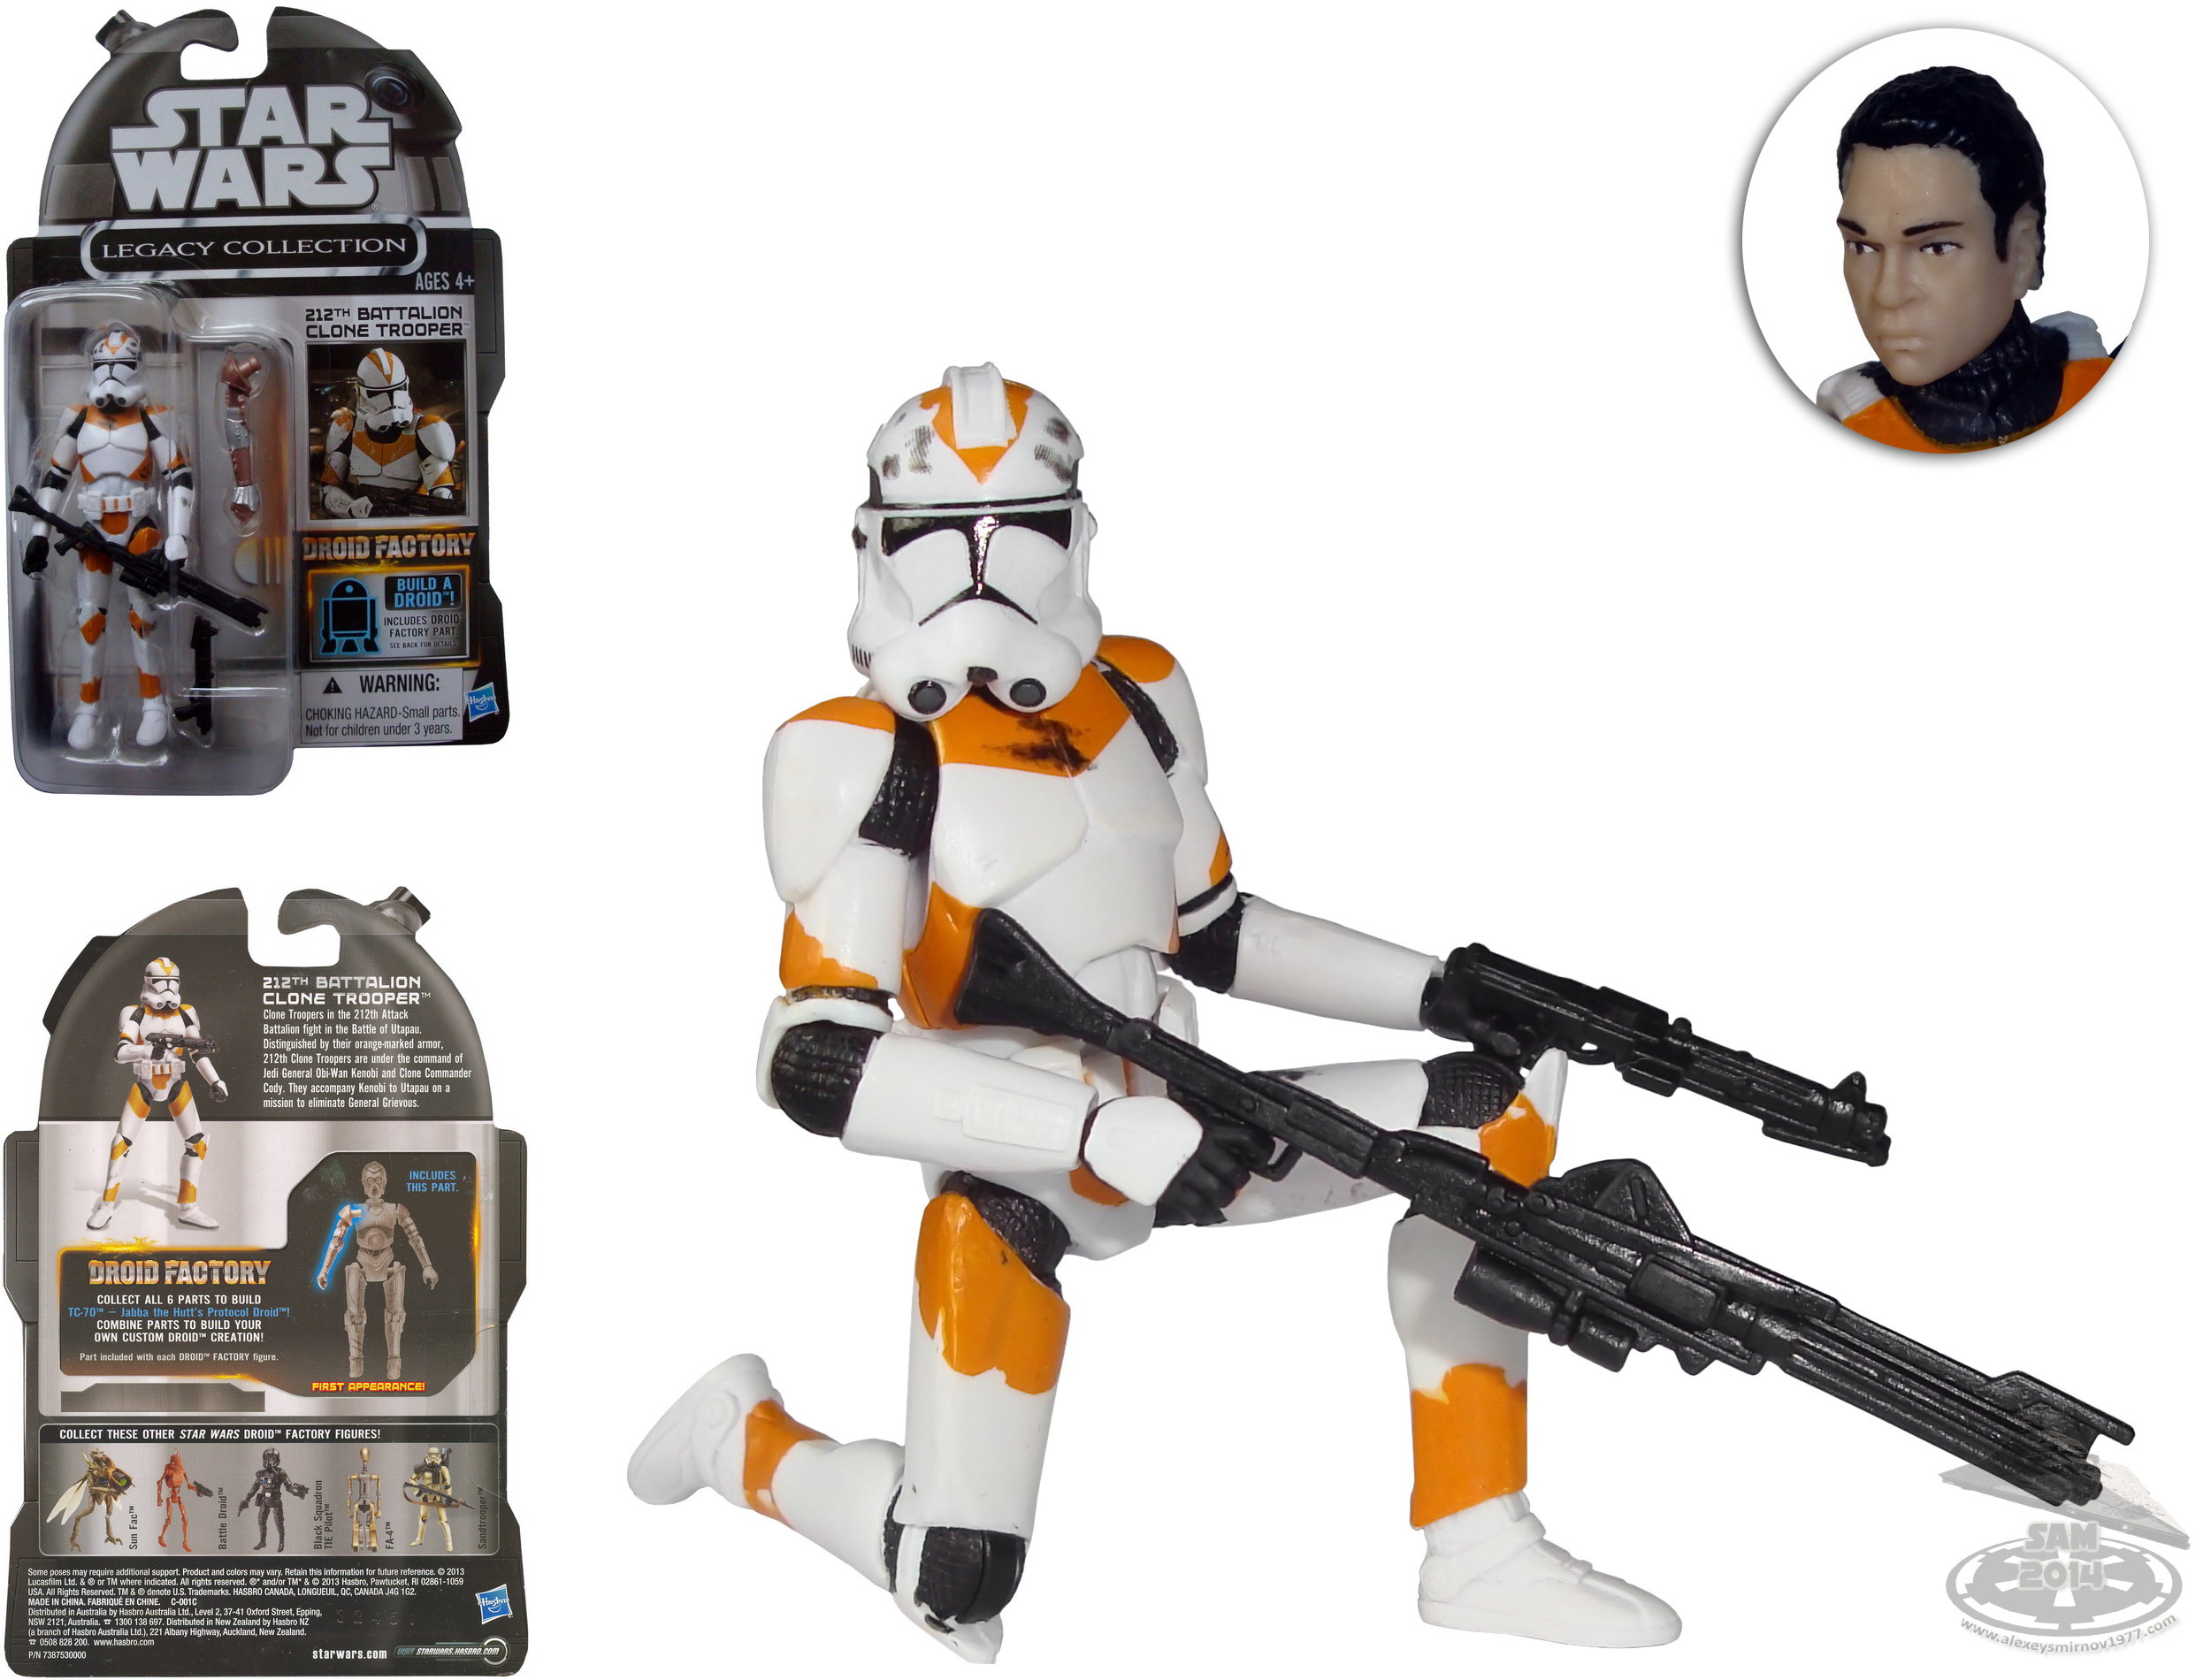 MY COLLECTION | UNIT PAGE - GAR Clone Trooper, Phase II Armor